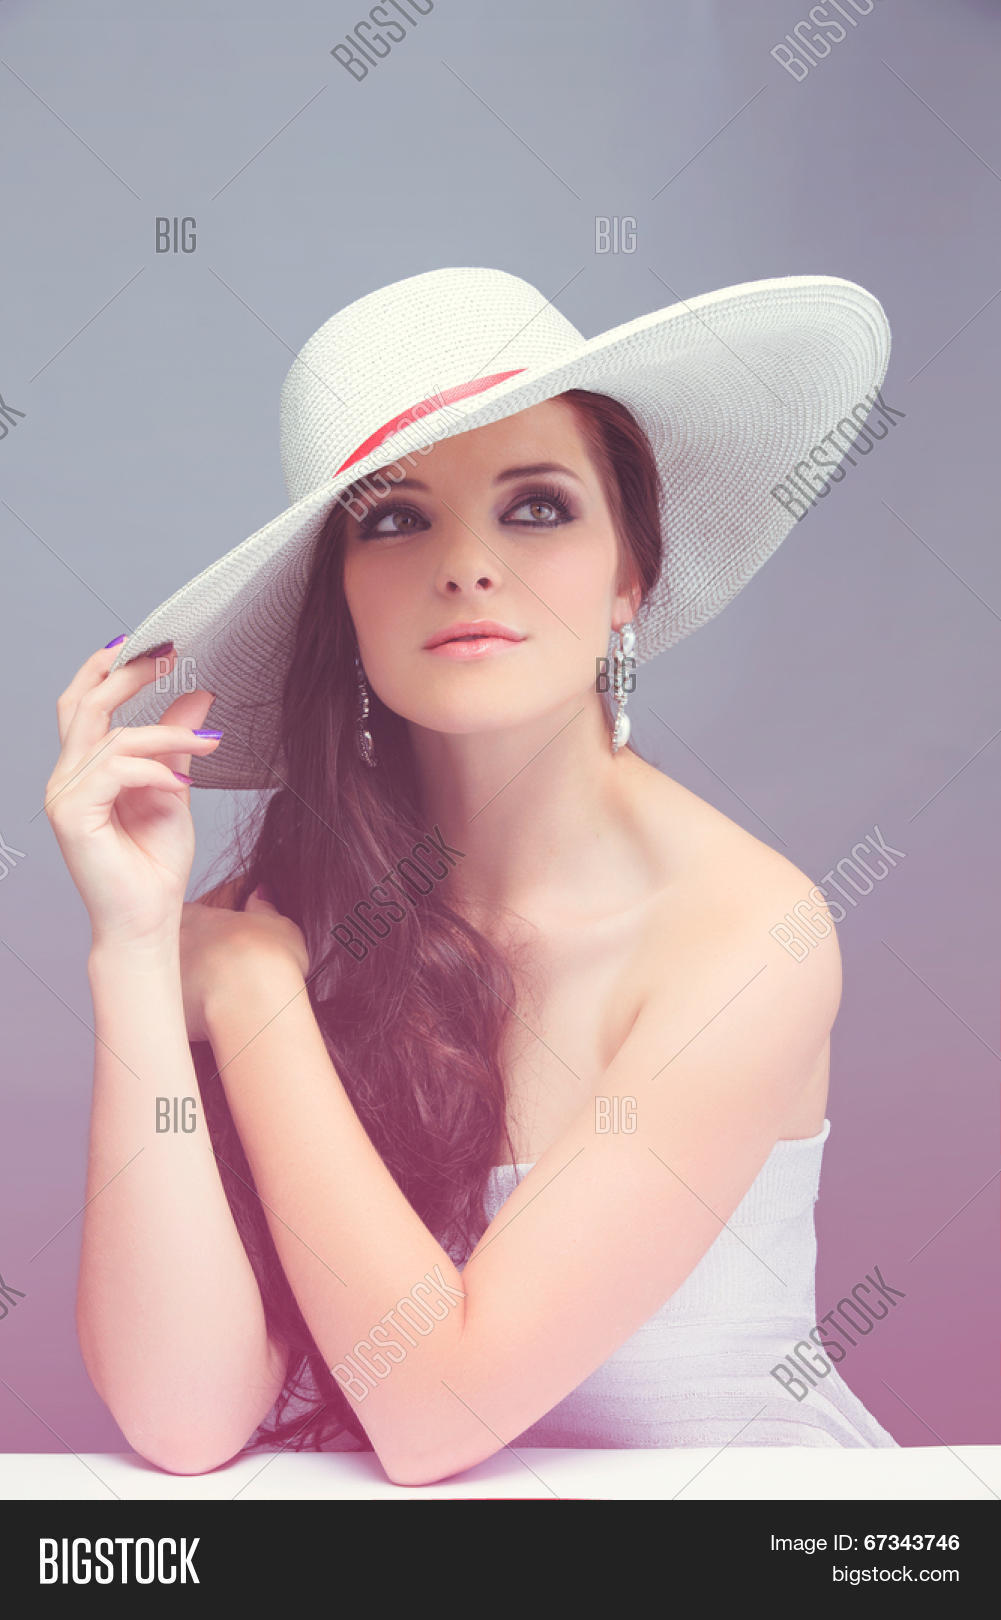 c5048963 Portrait of a beautiful young brunette woman. Wearing white hat over long  loose curly hair